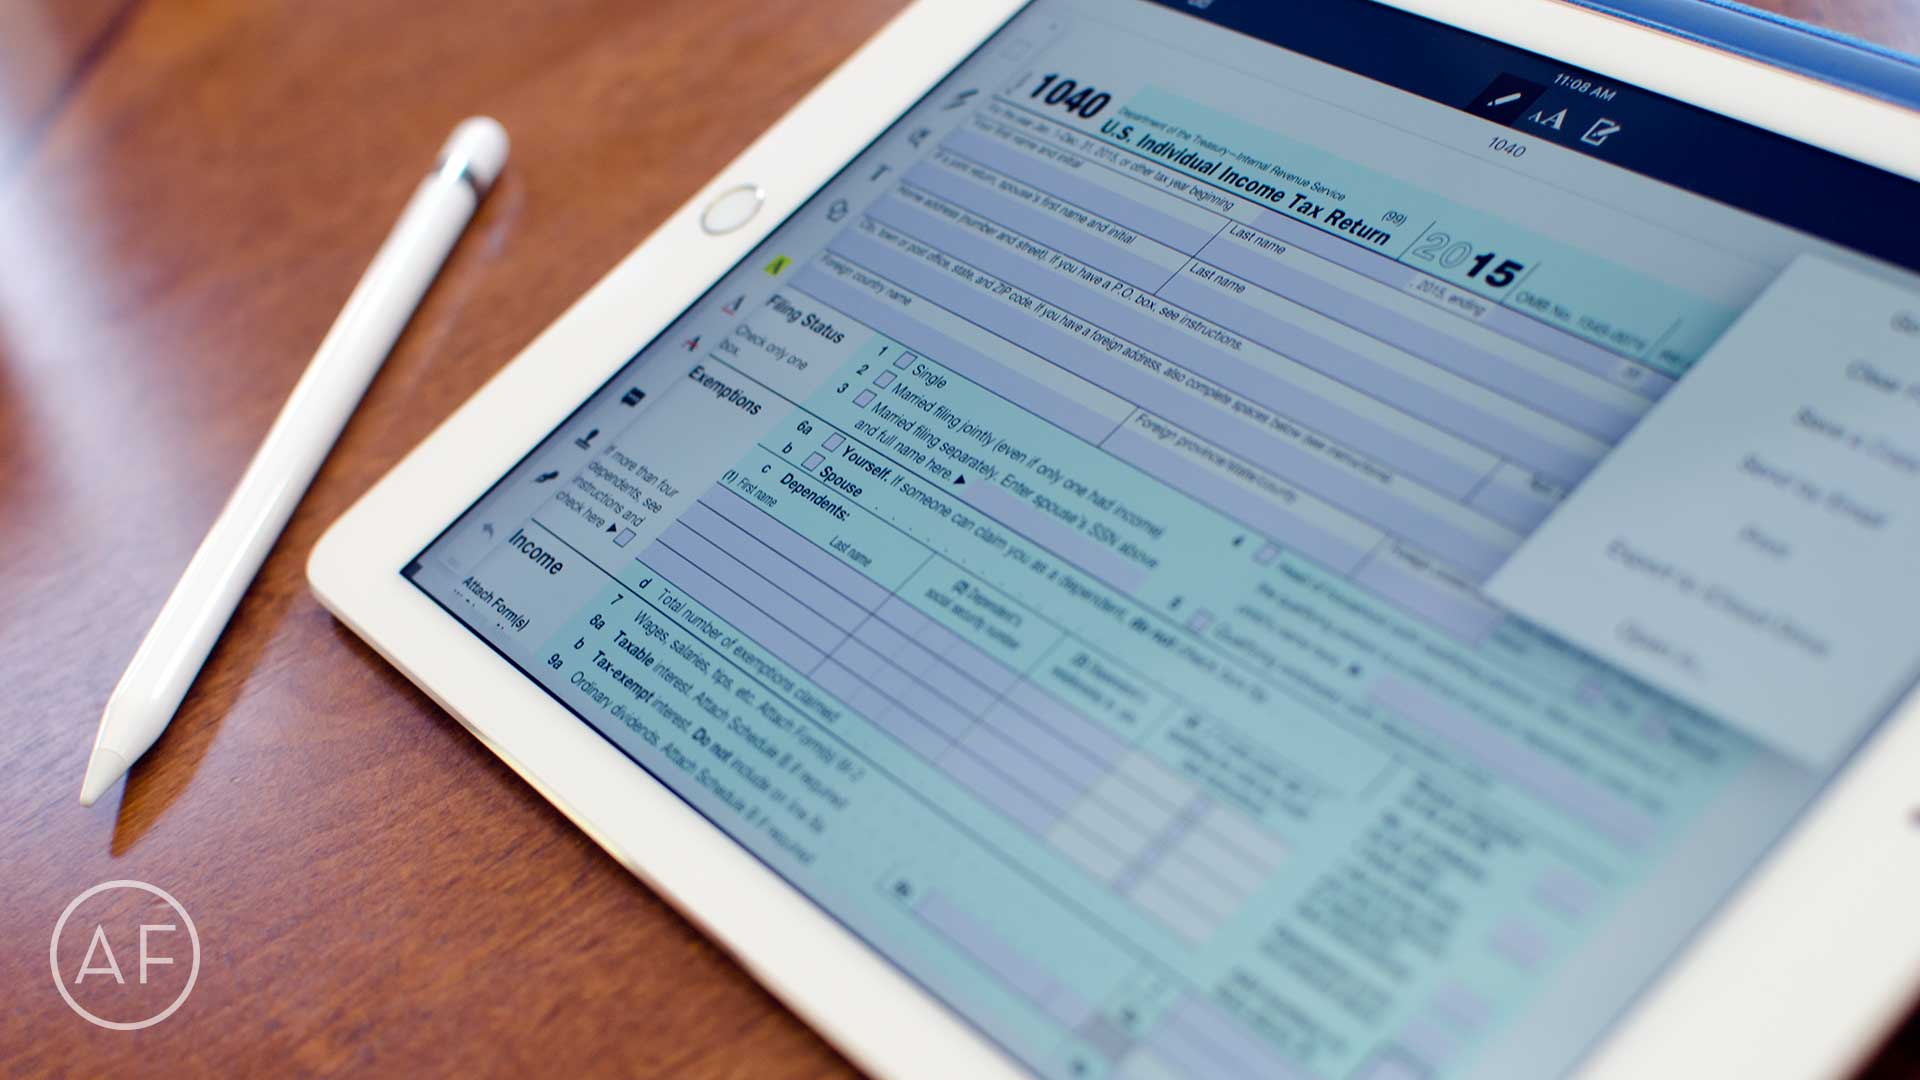 The iPad is great at handling PDFs and other kinds of documents. Here are 4 must-have apps.